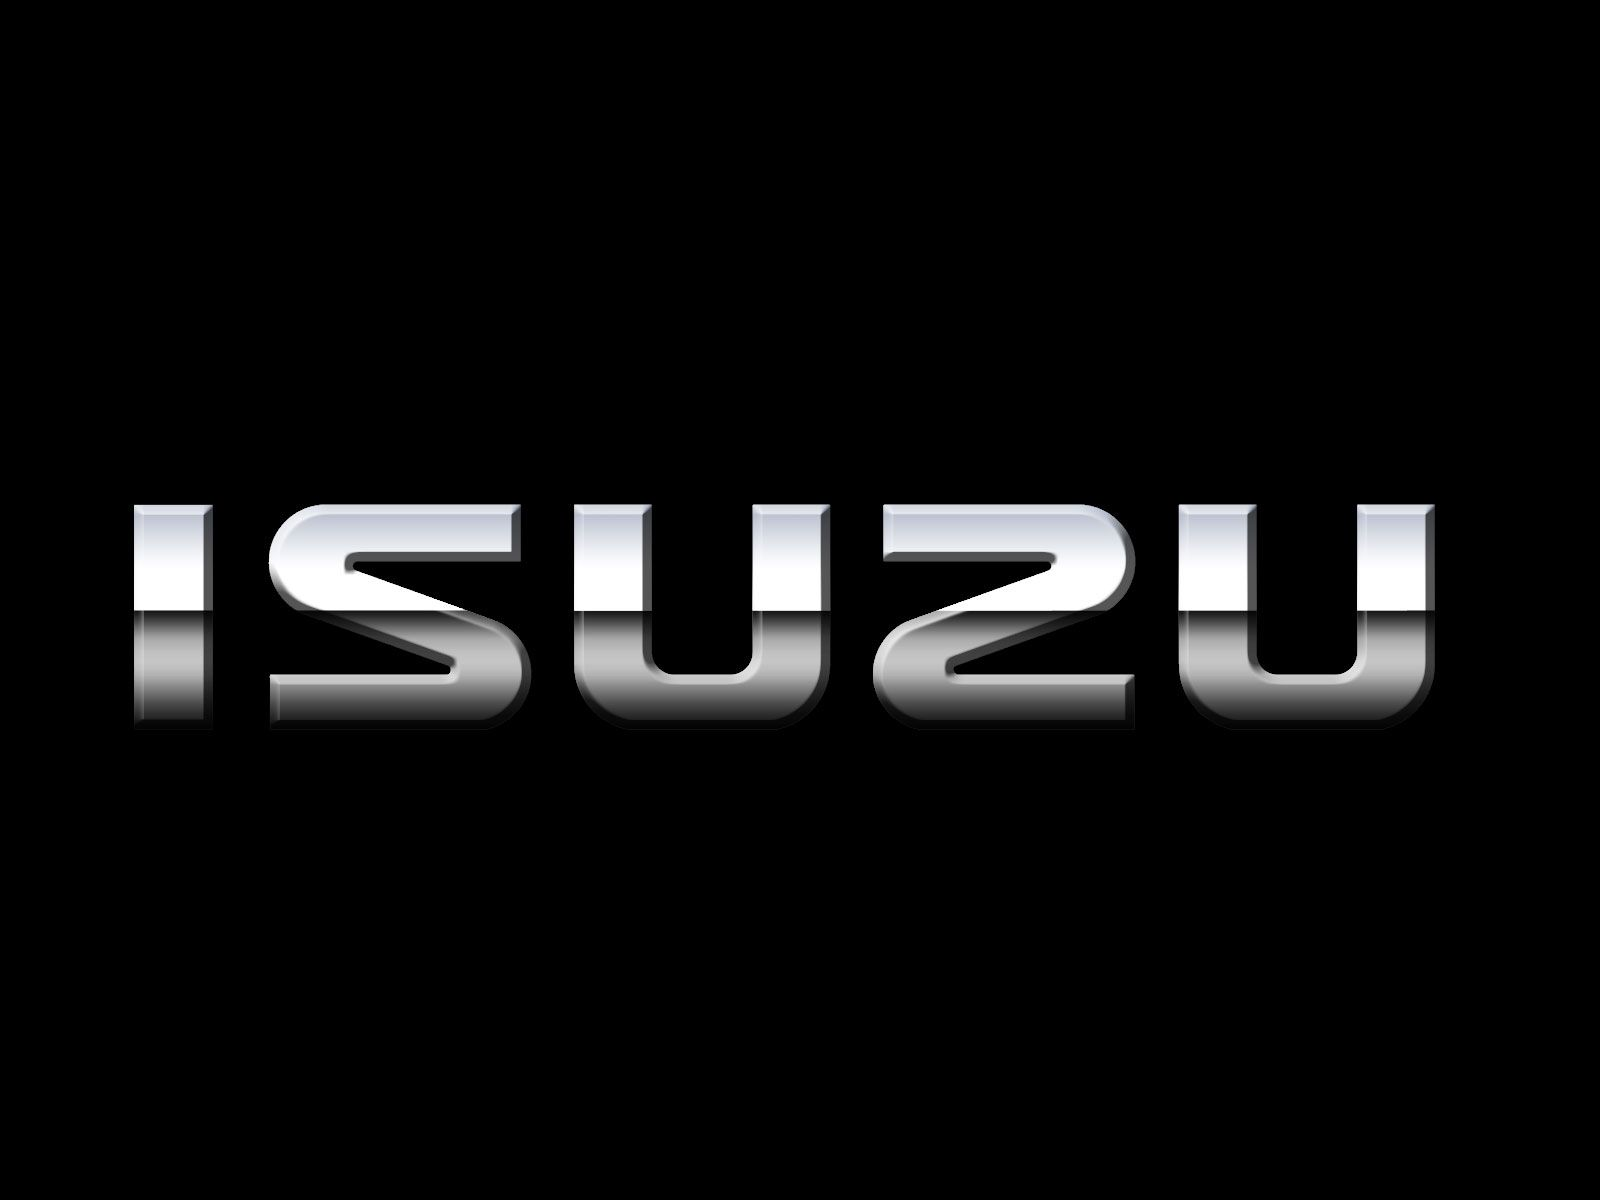 Diesel Wallpaper Cars Magari Poa 187 Isuzu Logo History Timeline And Latest Models